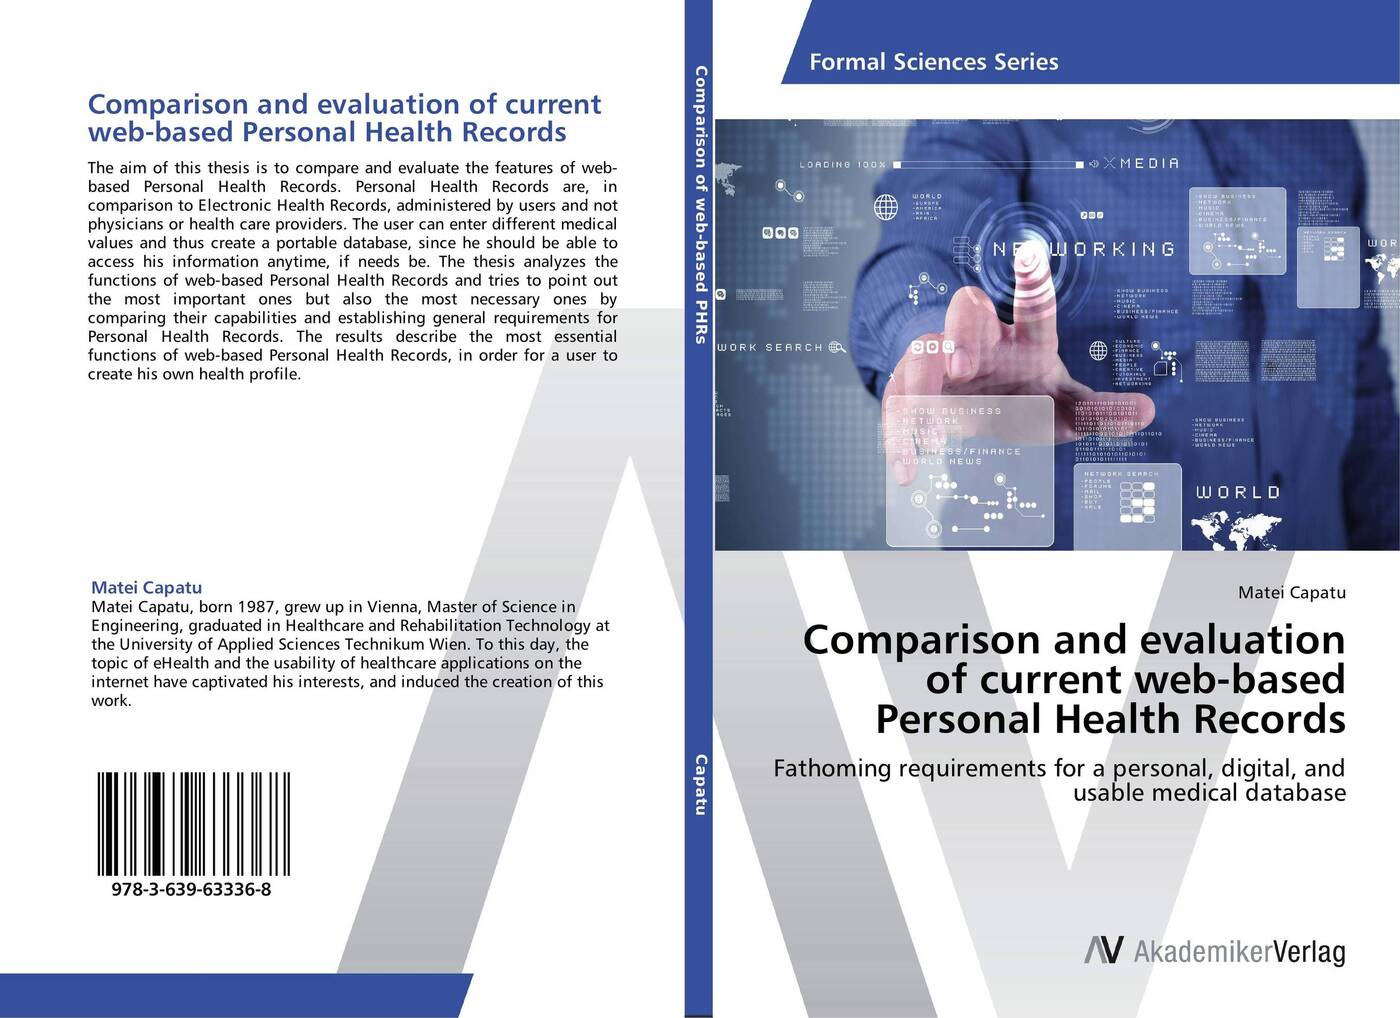 Matei Capatu Comparison and evaluation of current web-based Personal Health Records electronic health records and medical big data